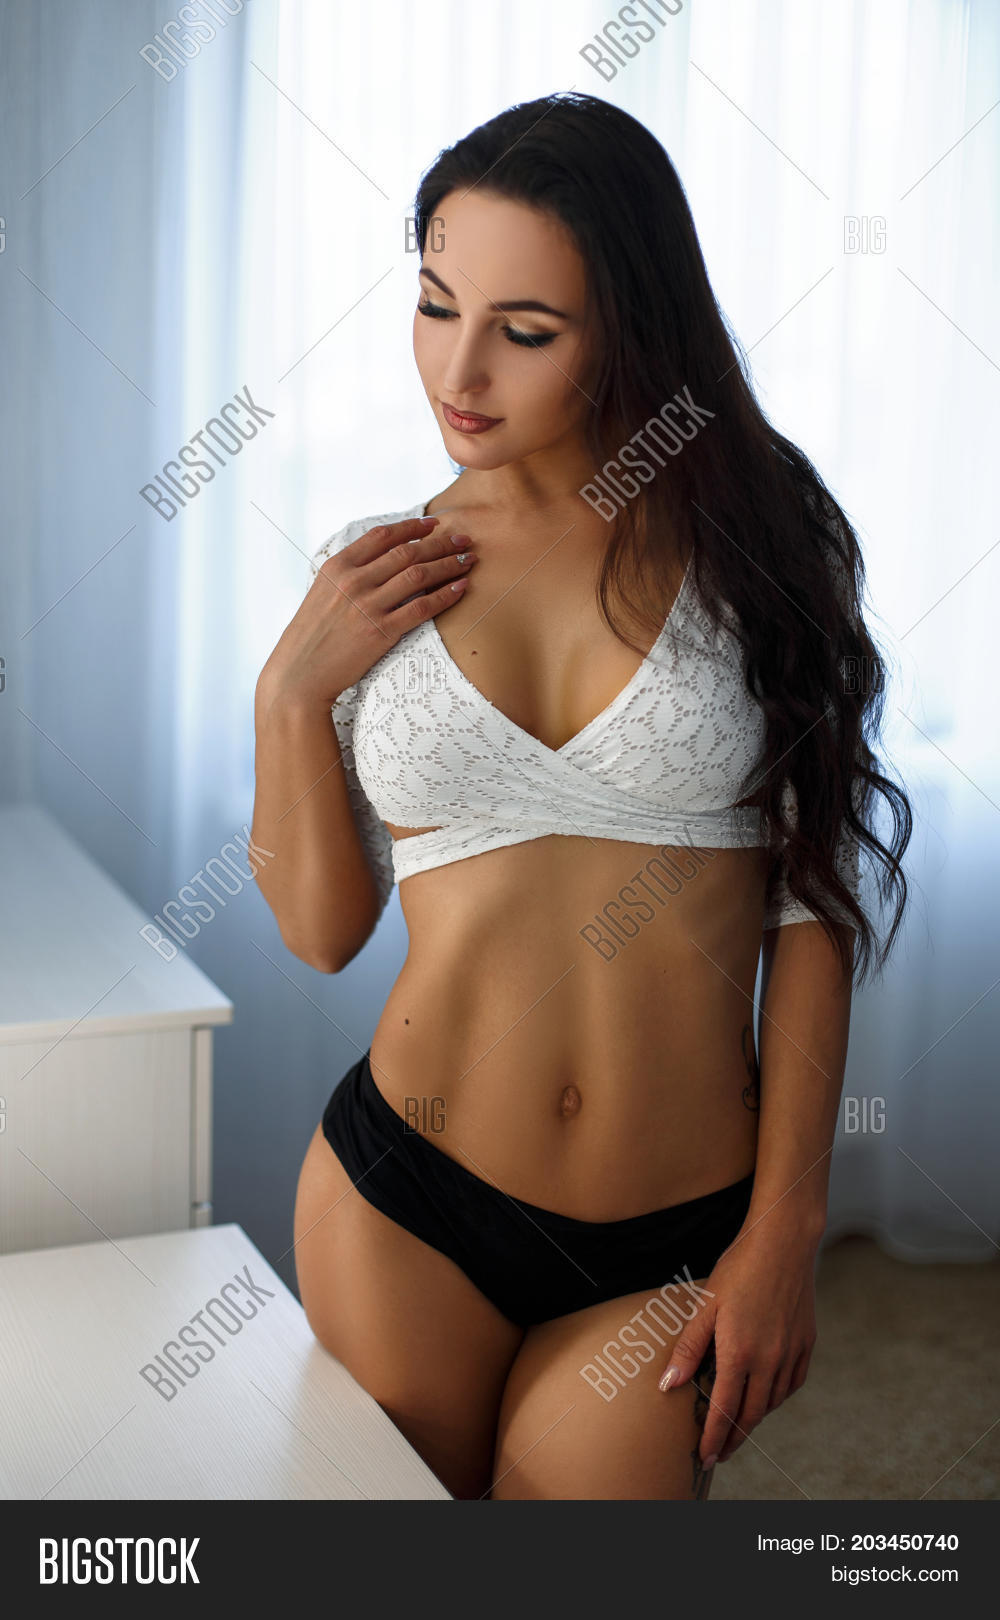 beautiful young girl big boobs sexy image & photo | bigstock